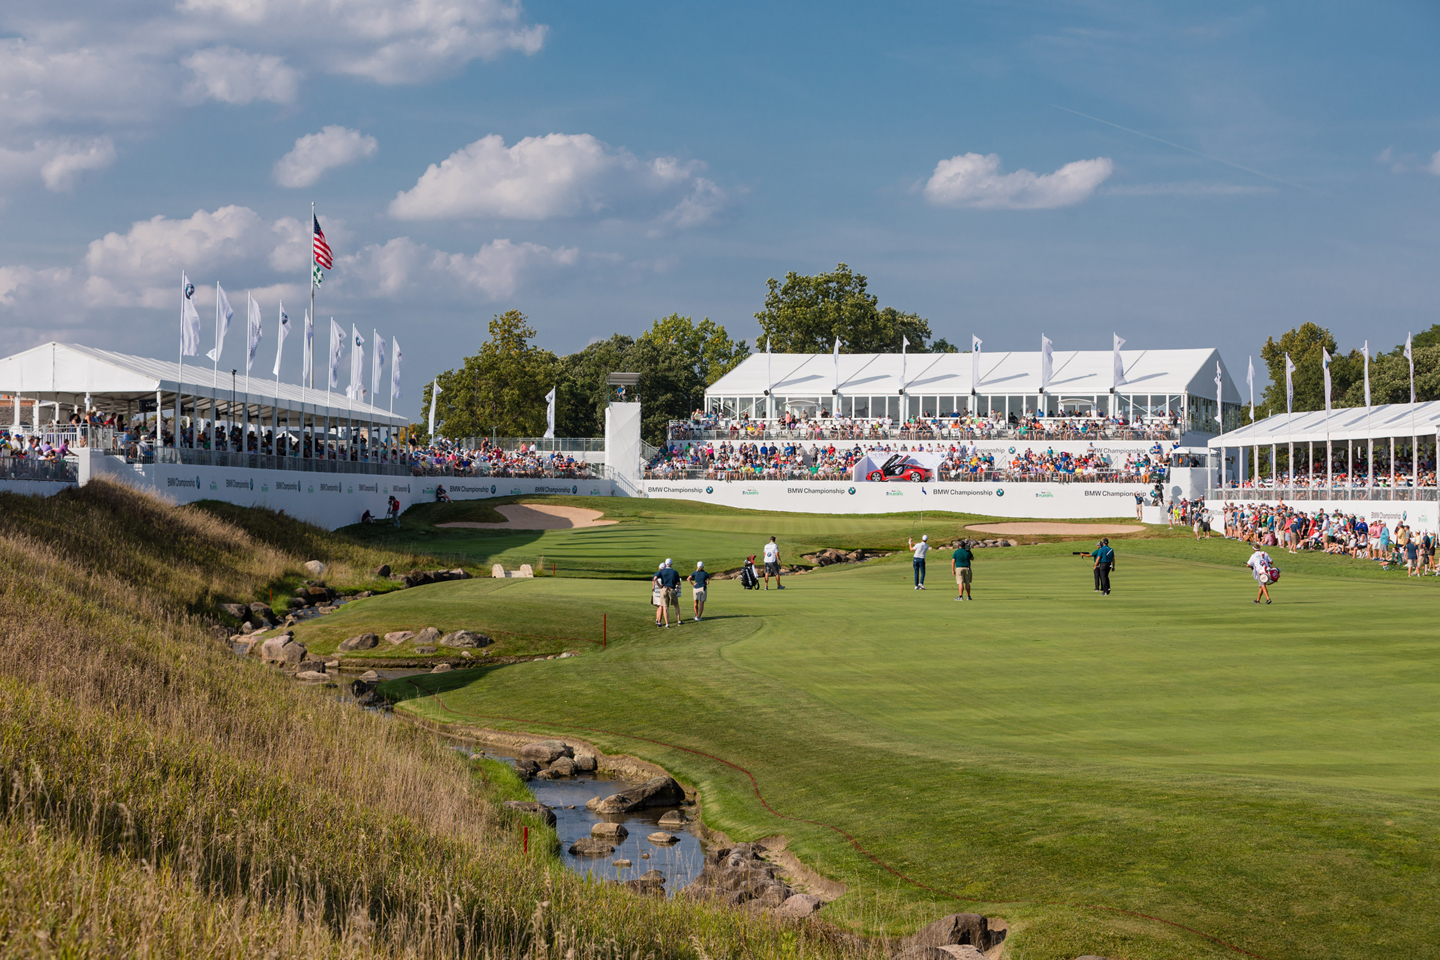 World's best golfers competing in the BMW Championship at Aronimink Golf Club